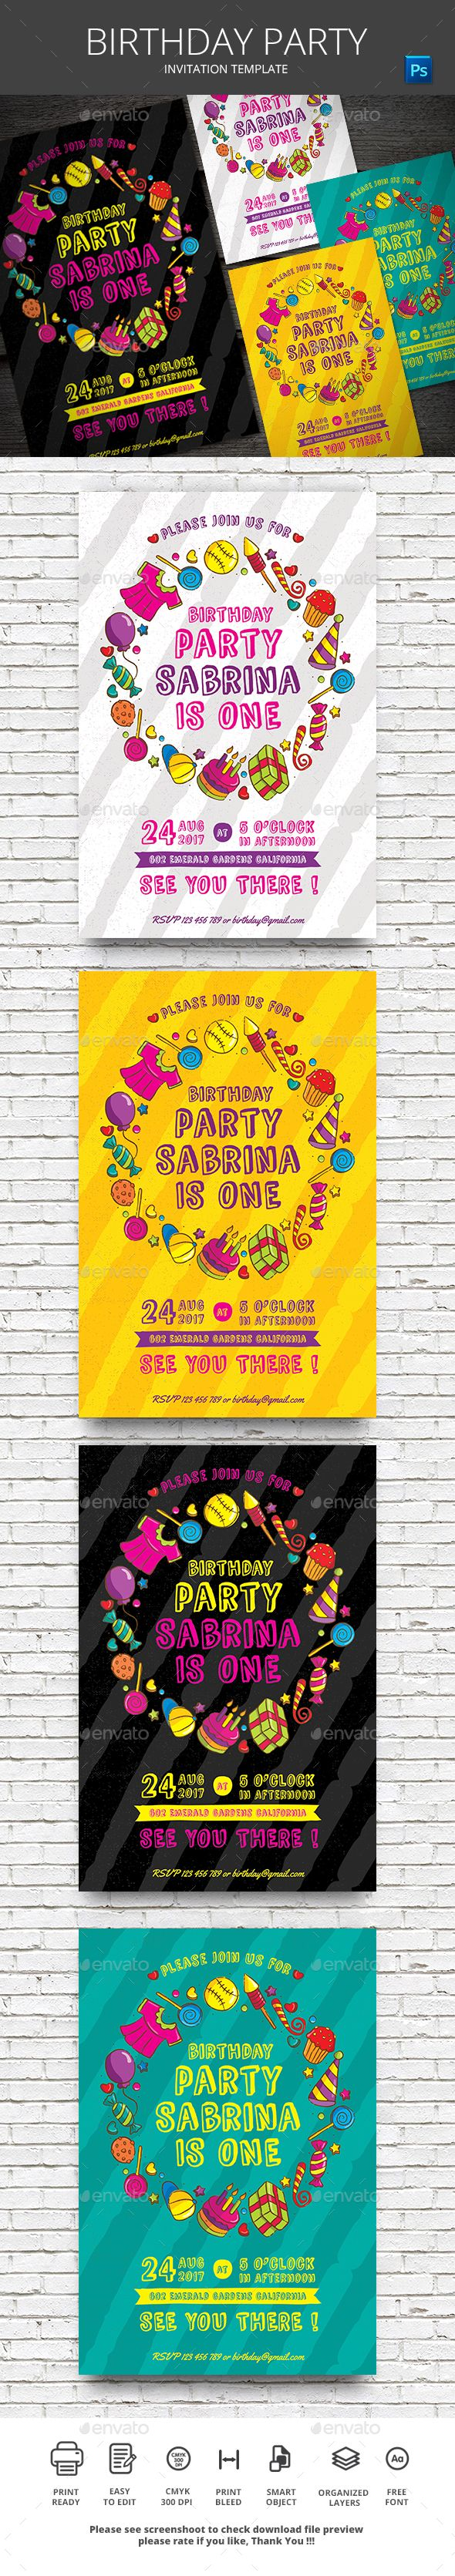 Birthday Invitation Photoshop PSD Cool O Available Here Graphicriver Item 18624671refpxcr